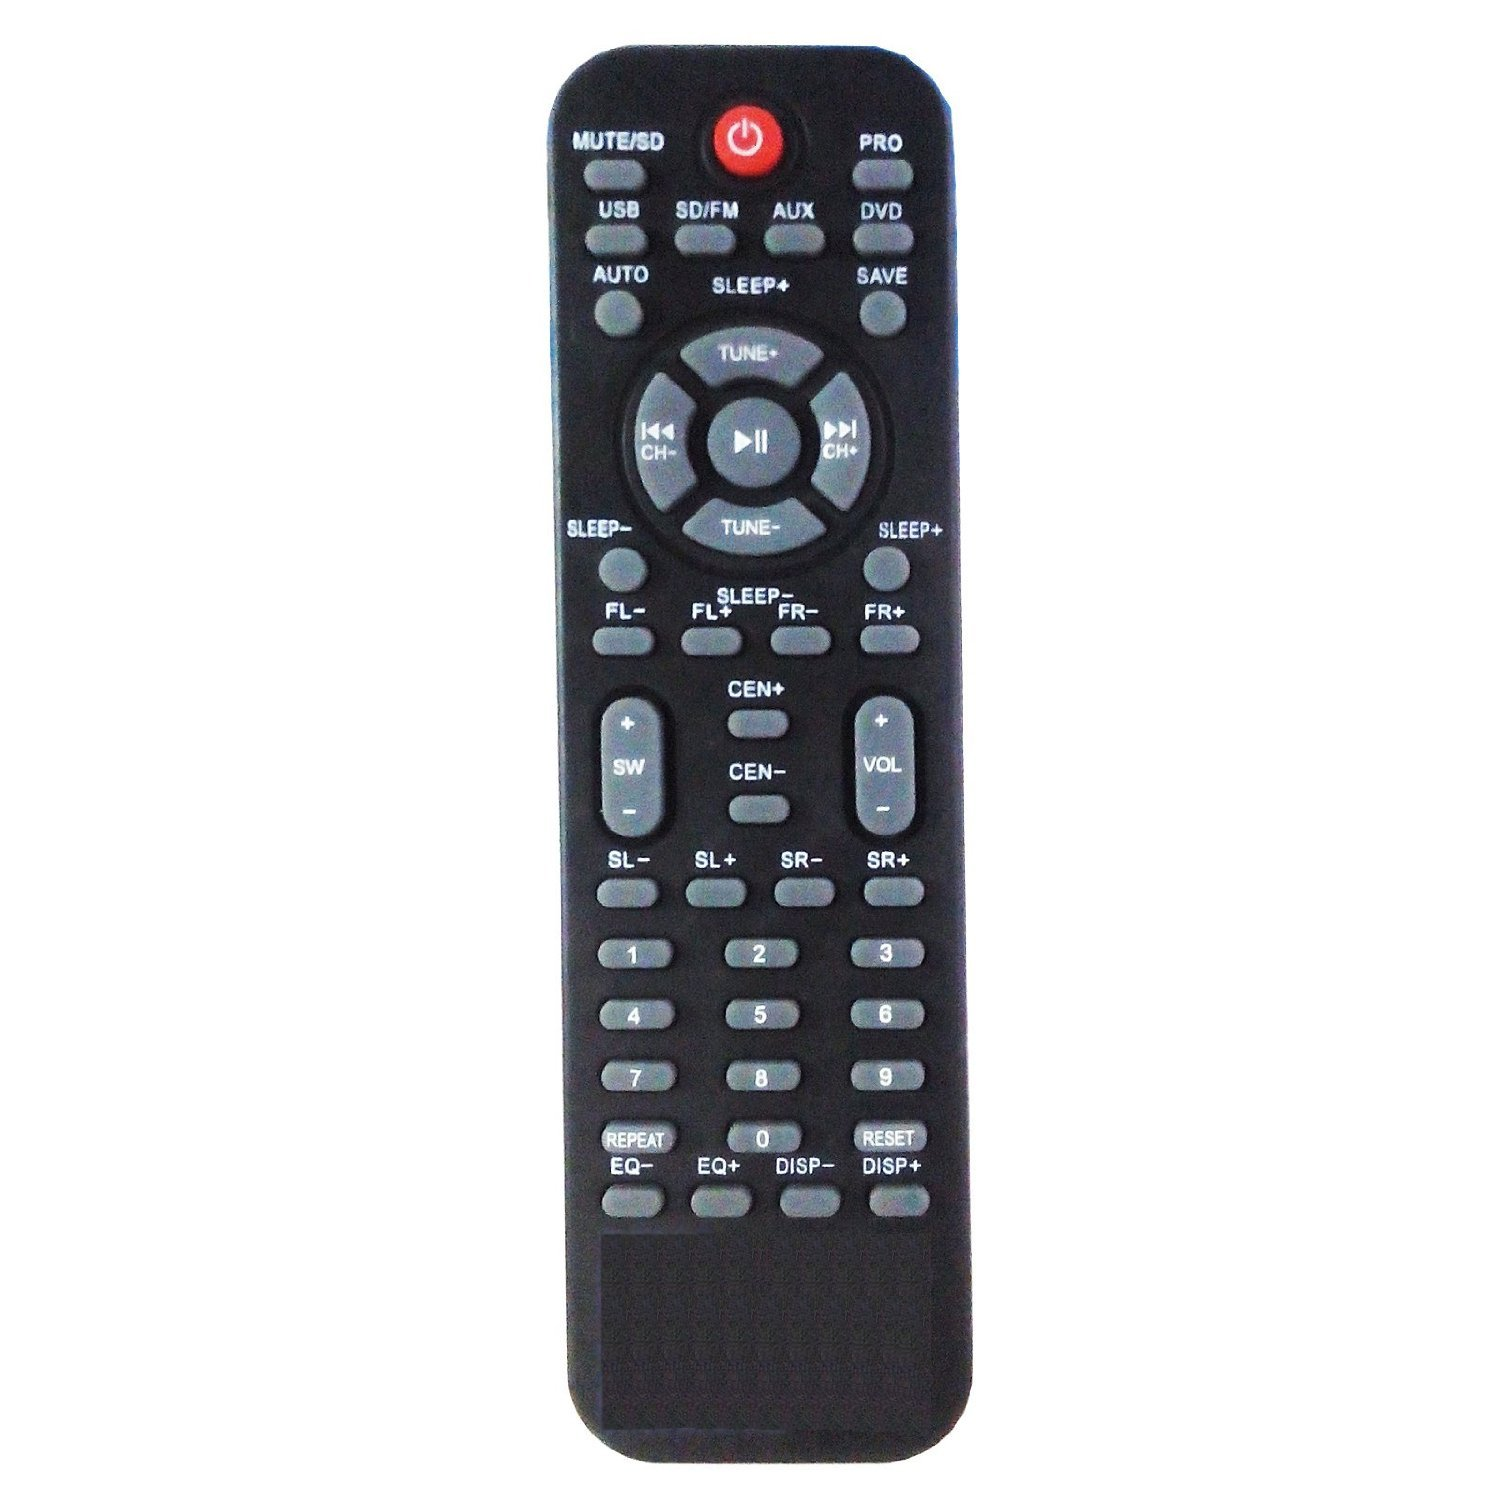 home theater remote control. buy universal 10 in 1 home theater remote (please match the image) (sp) online at low prices india - amazon.in control .